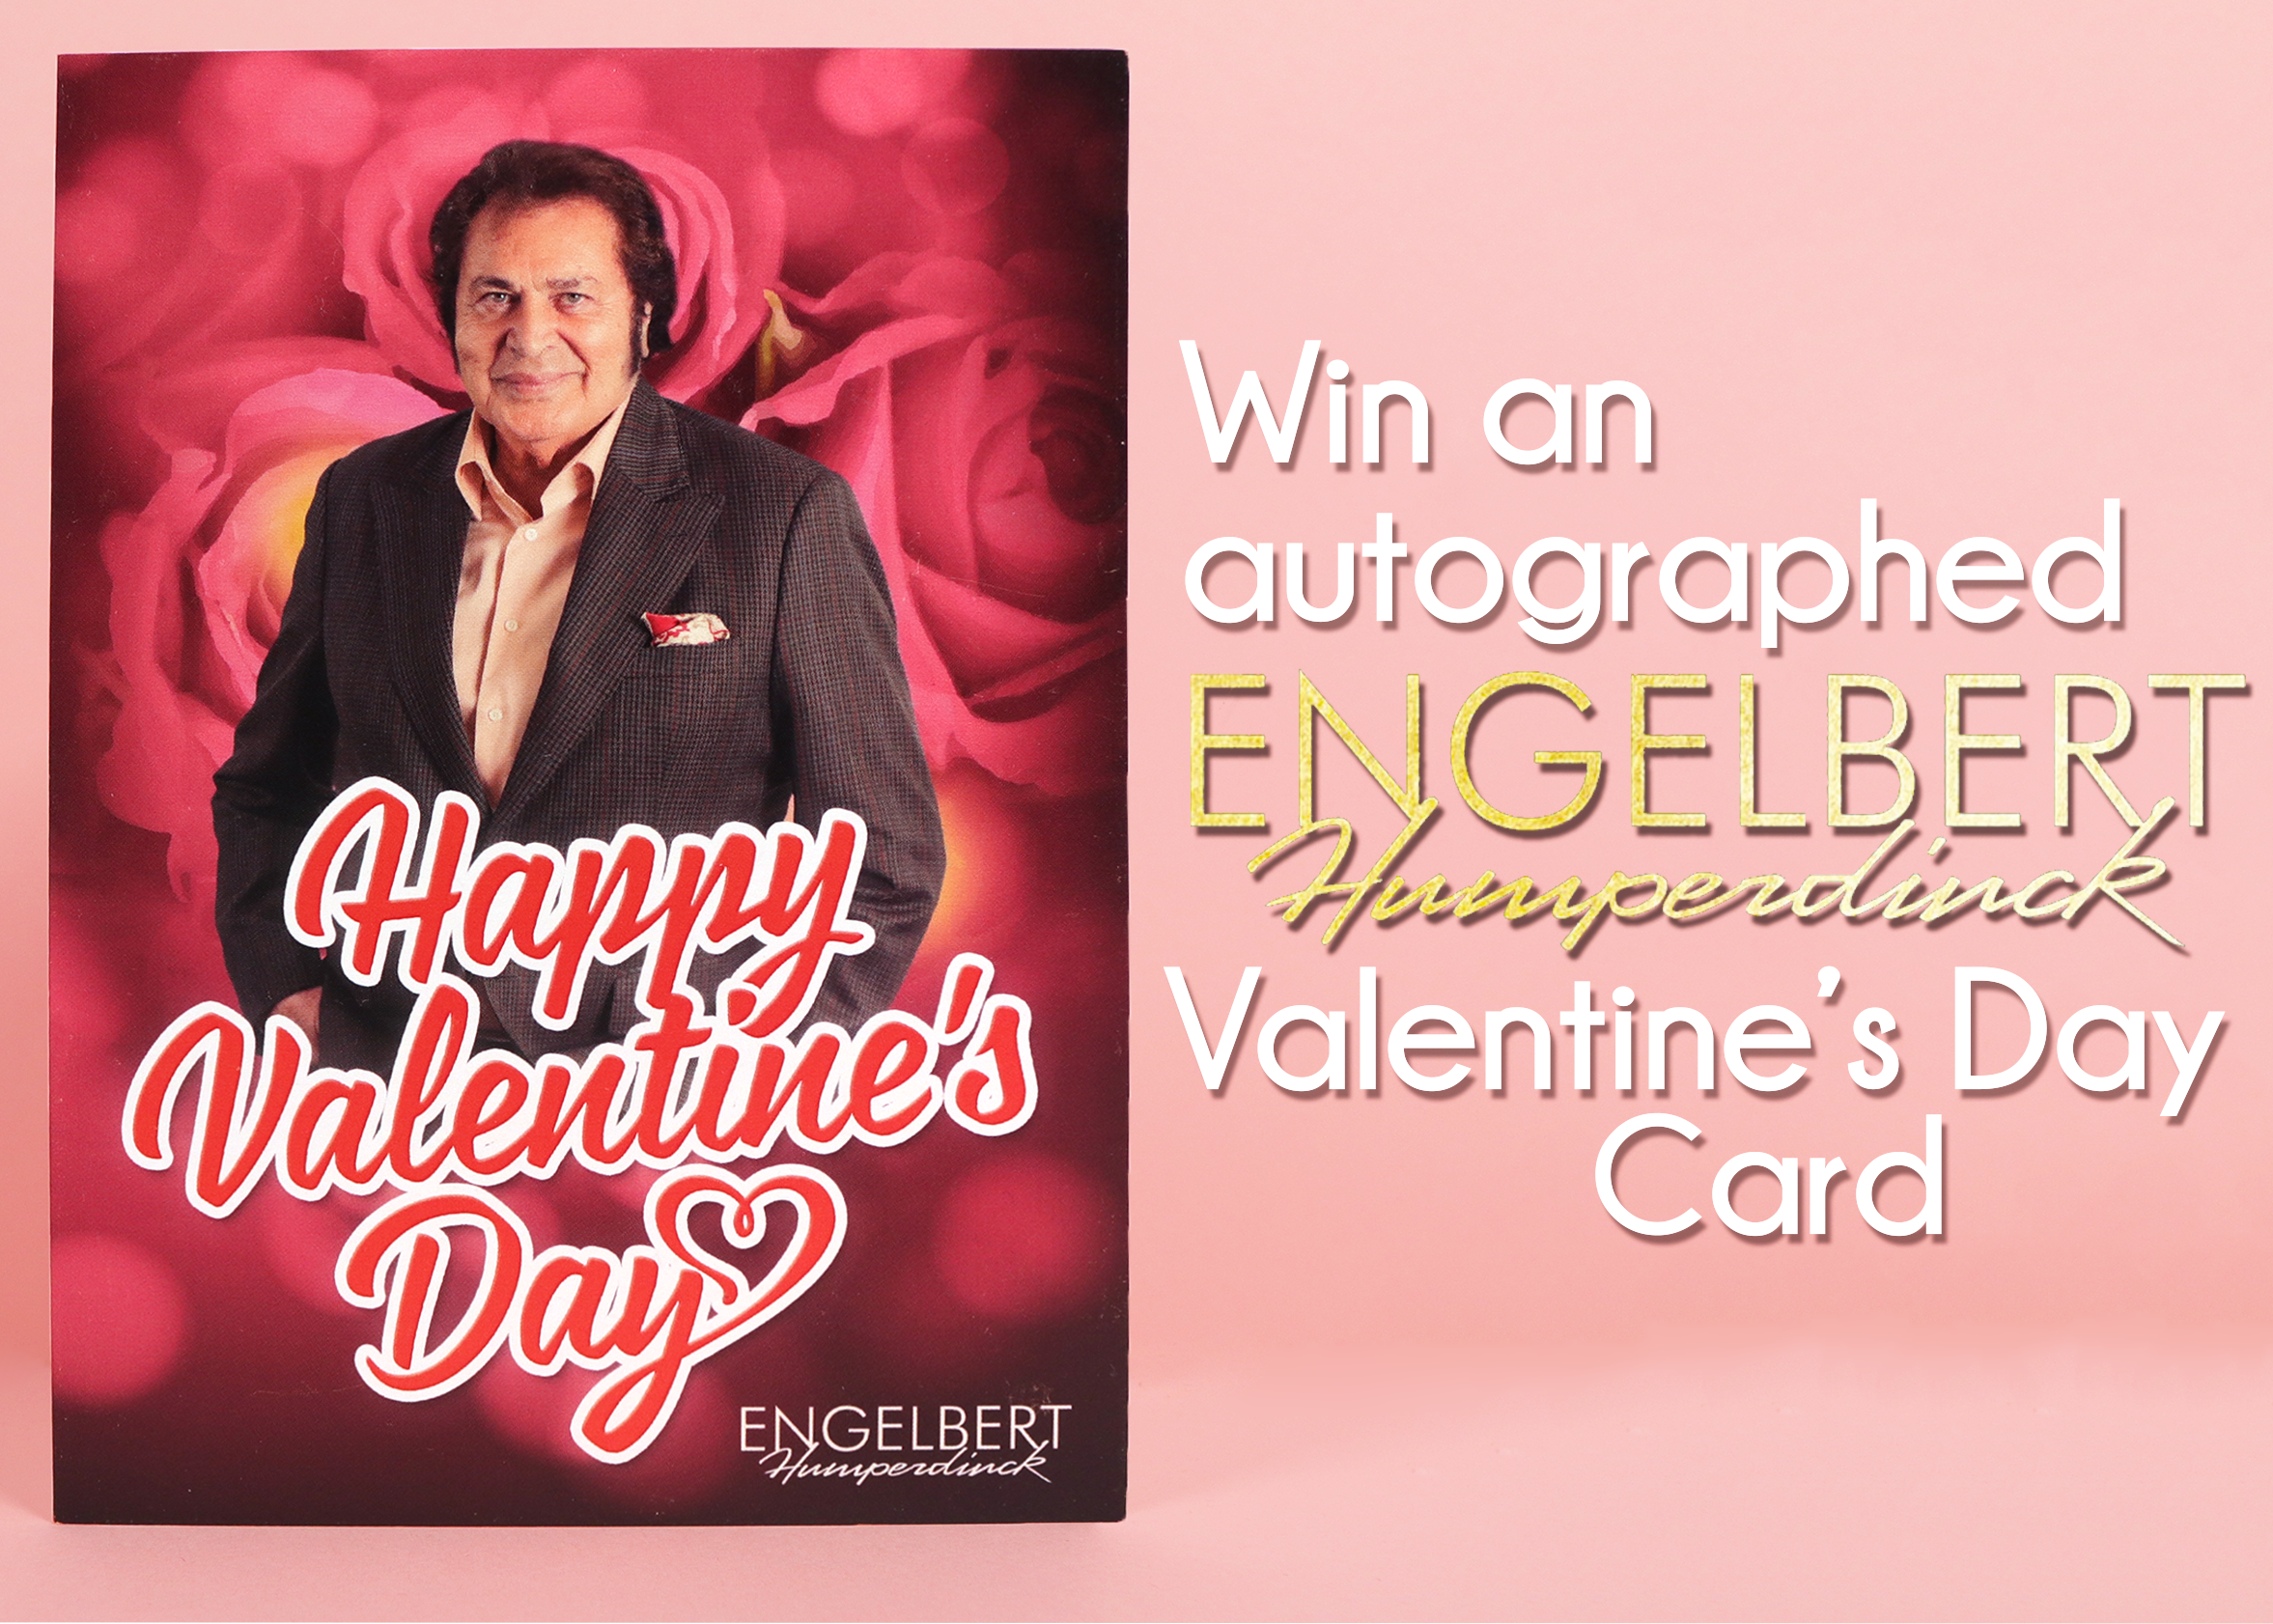 Win an Autographed Engelbert Humperdinck Valentine's Day Card!